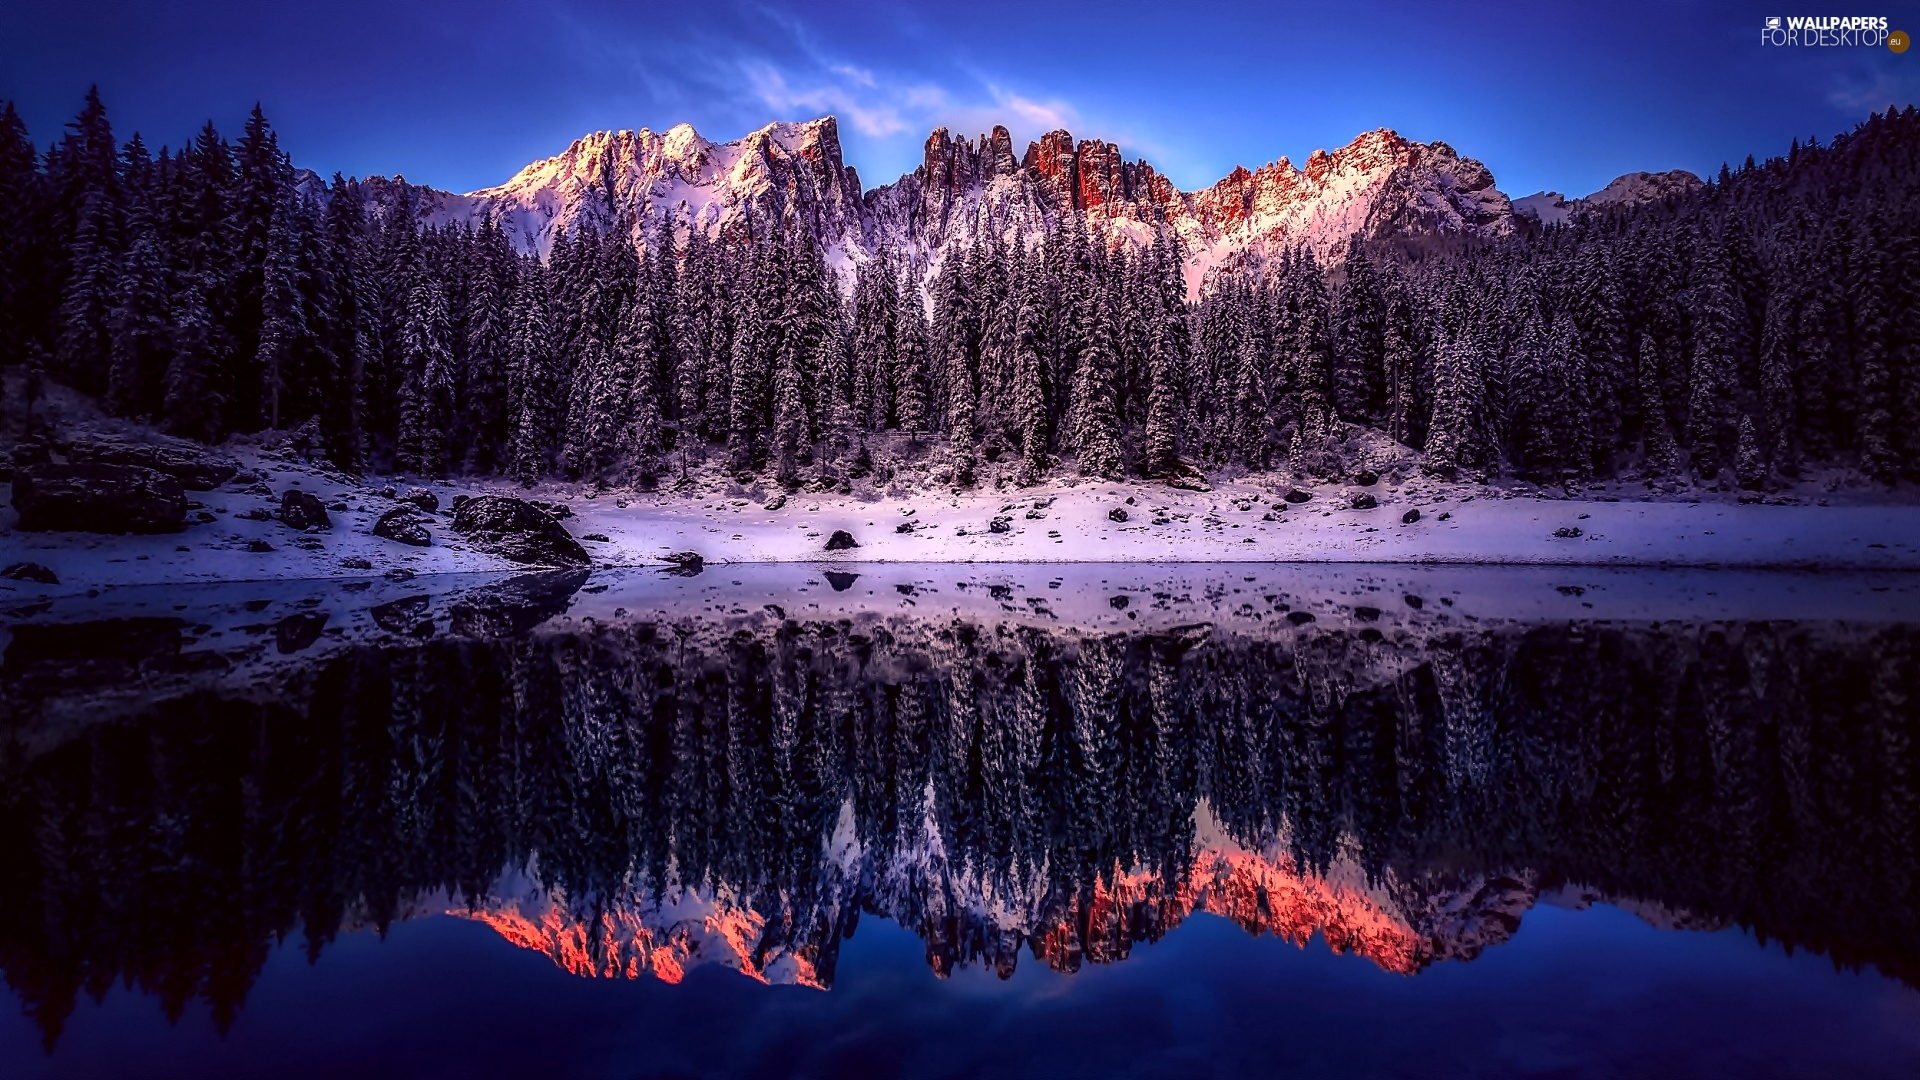 Province of Bolzano, Italy, Karersee Lake, Dolomites Mountains, reflection, snow, viewes, forest, trees